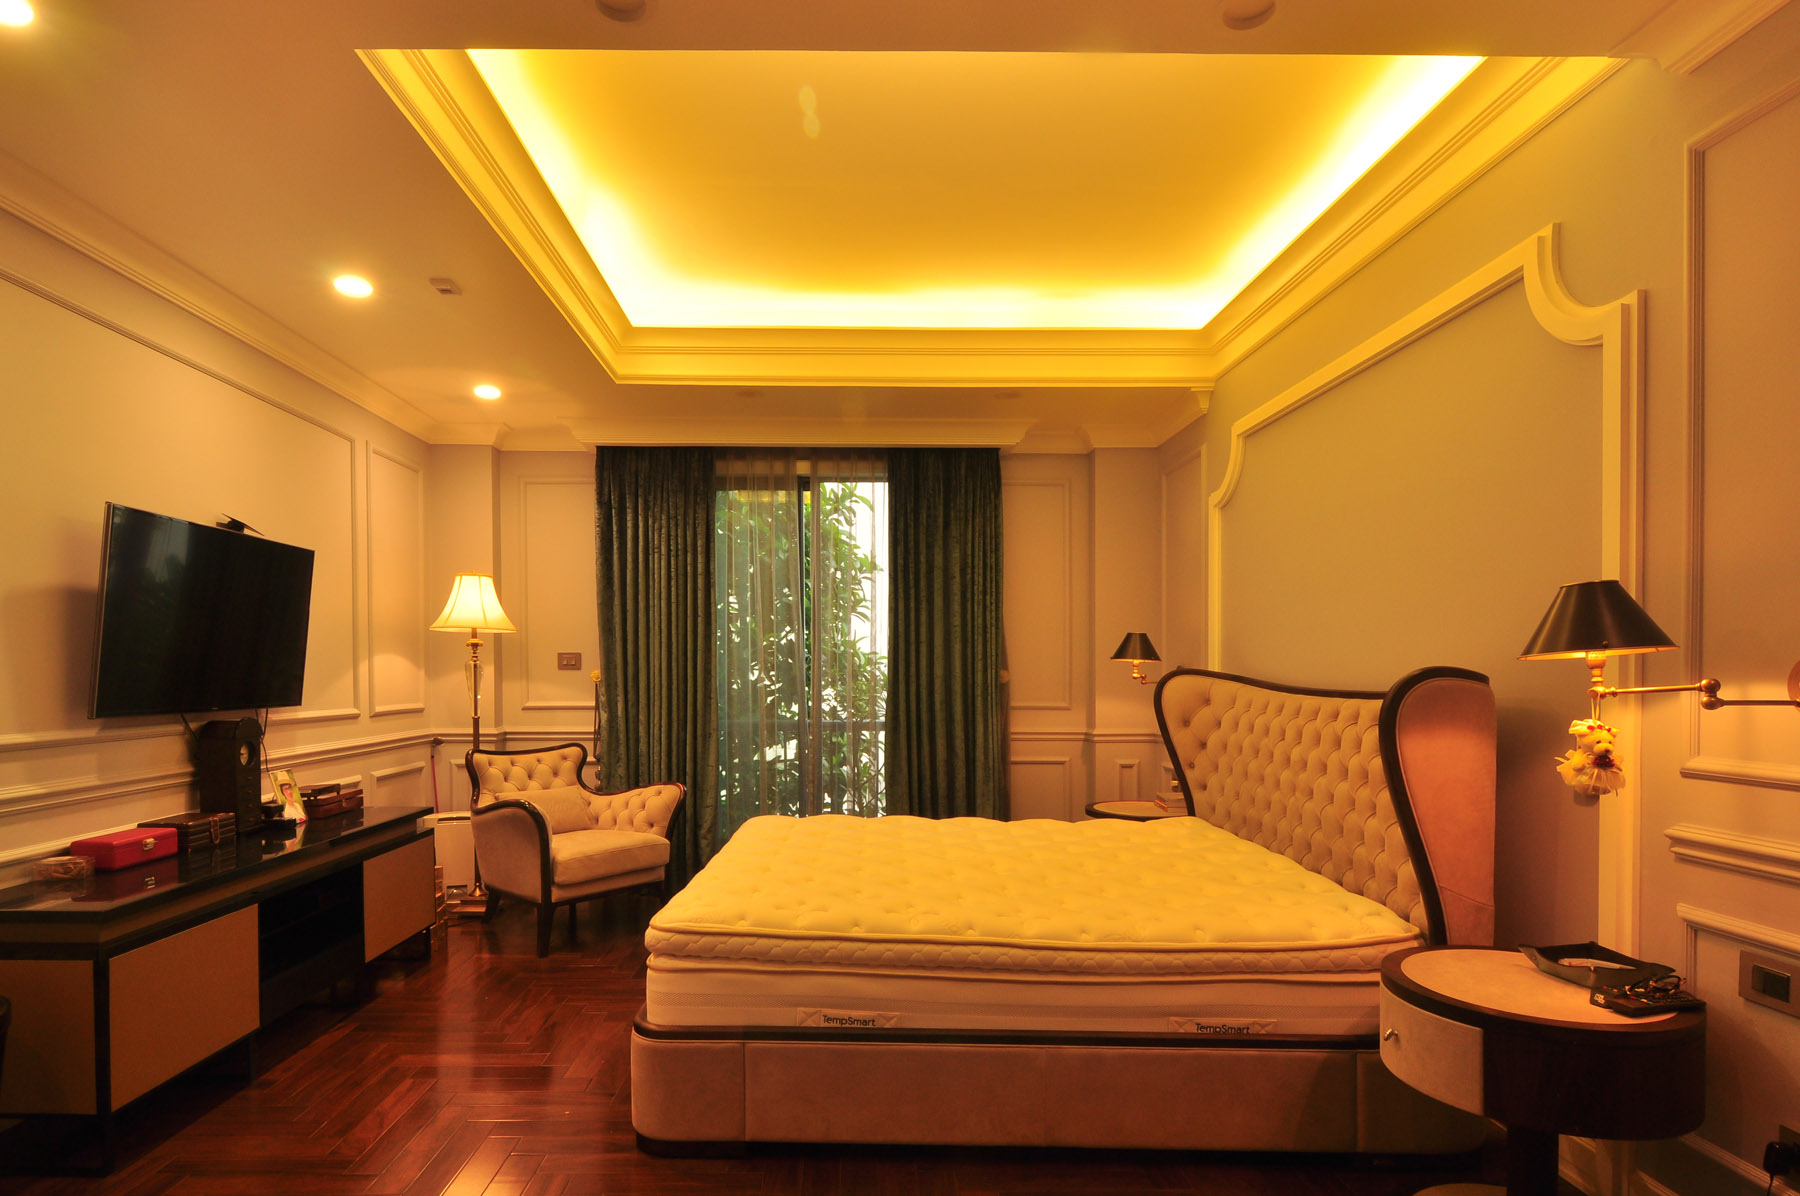 Phòng ngủ | Bedroom